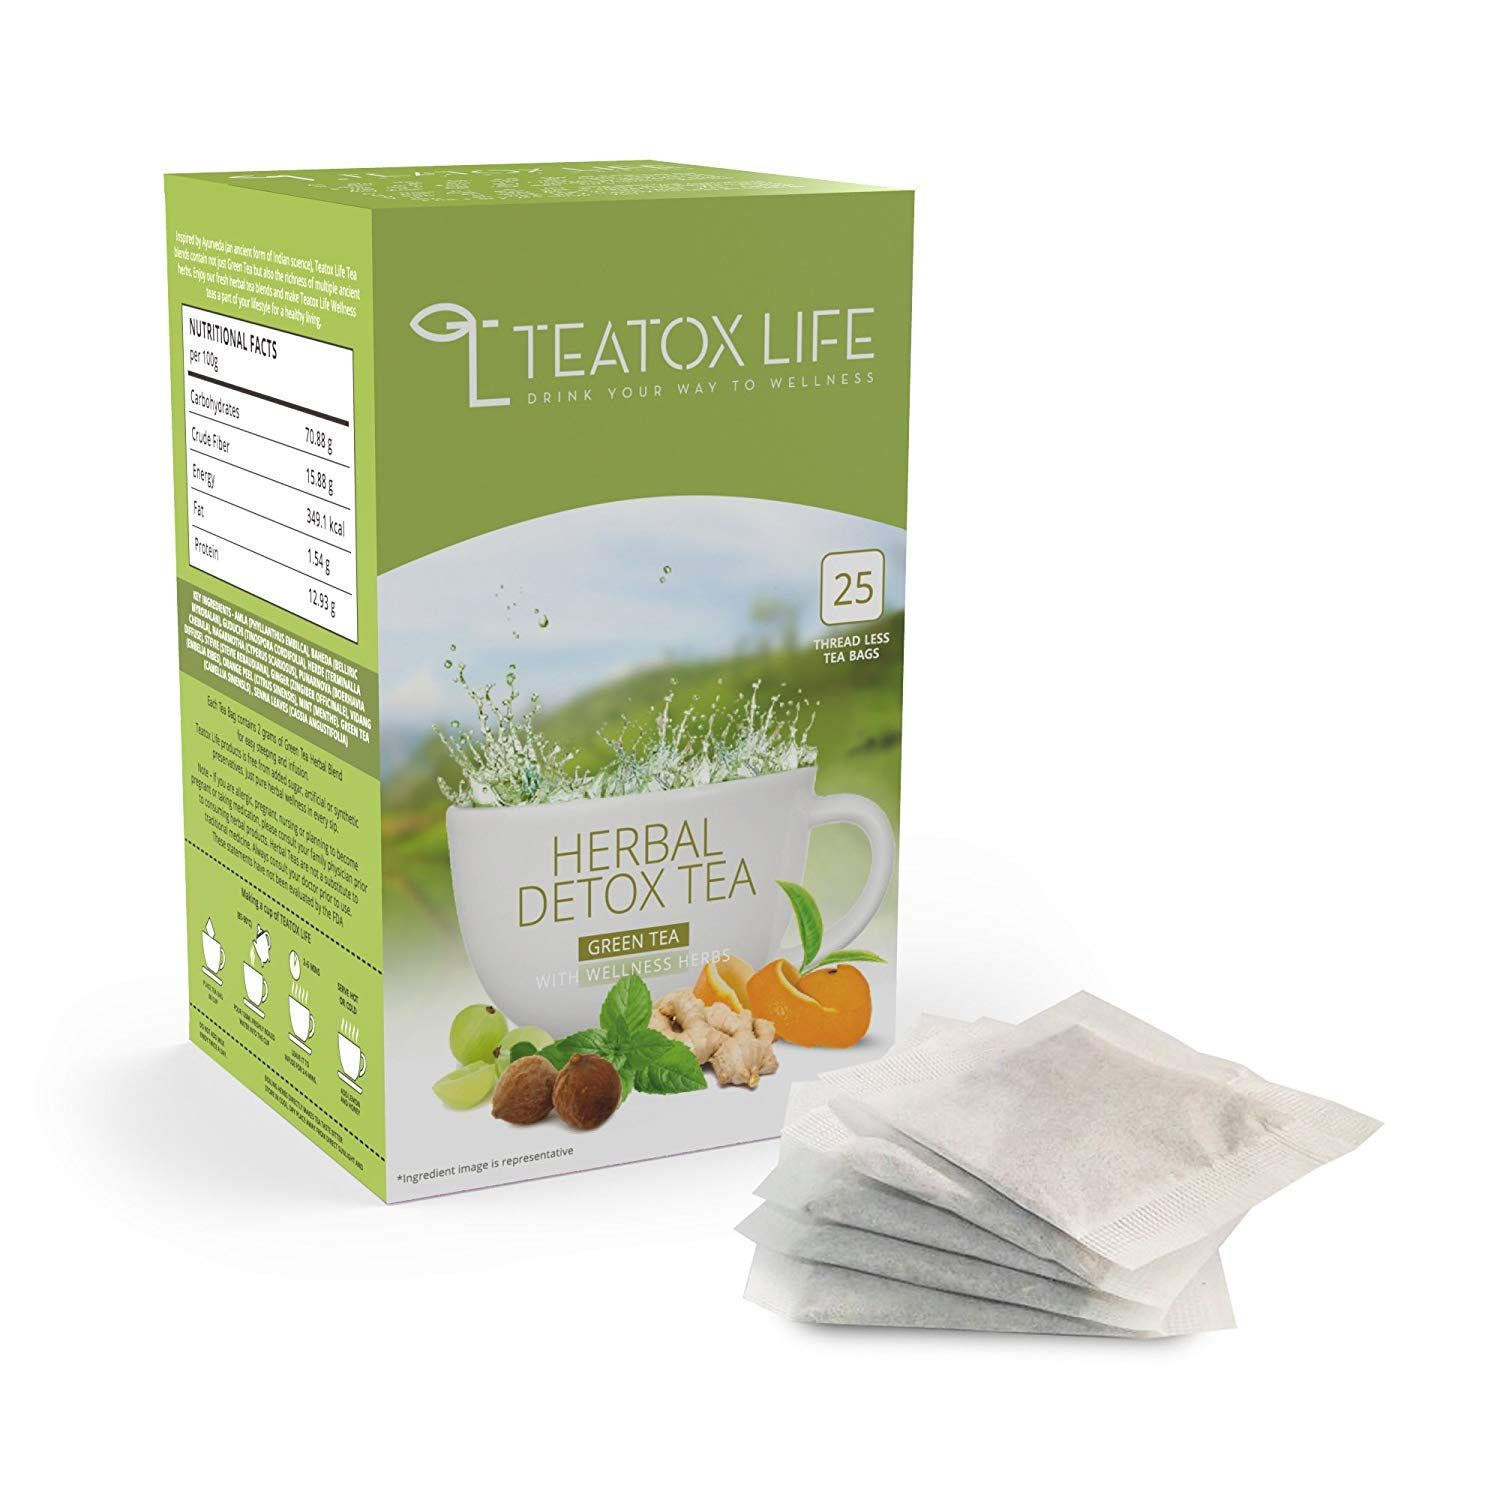 Flat 54% off:- Teatox Life 28 Day Detox Herbal Tea for weight loss, slimming tea